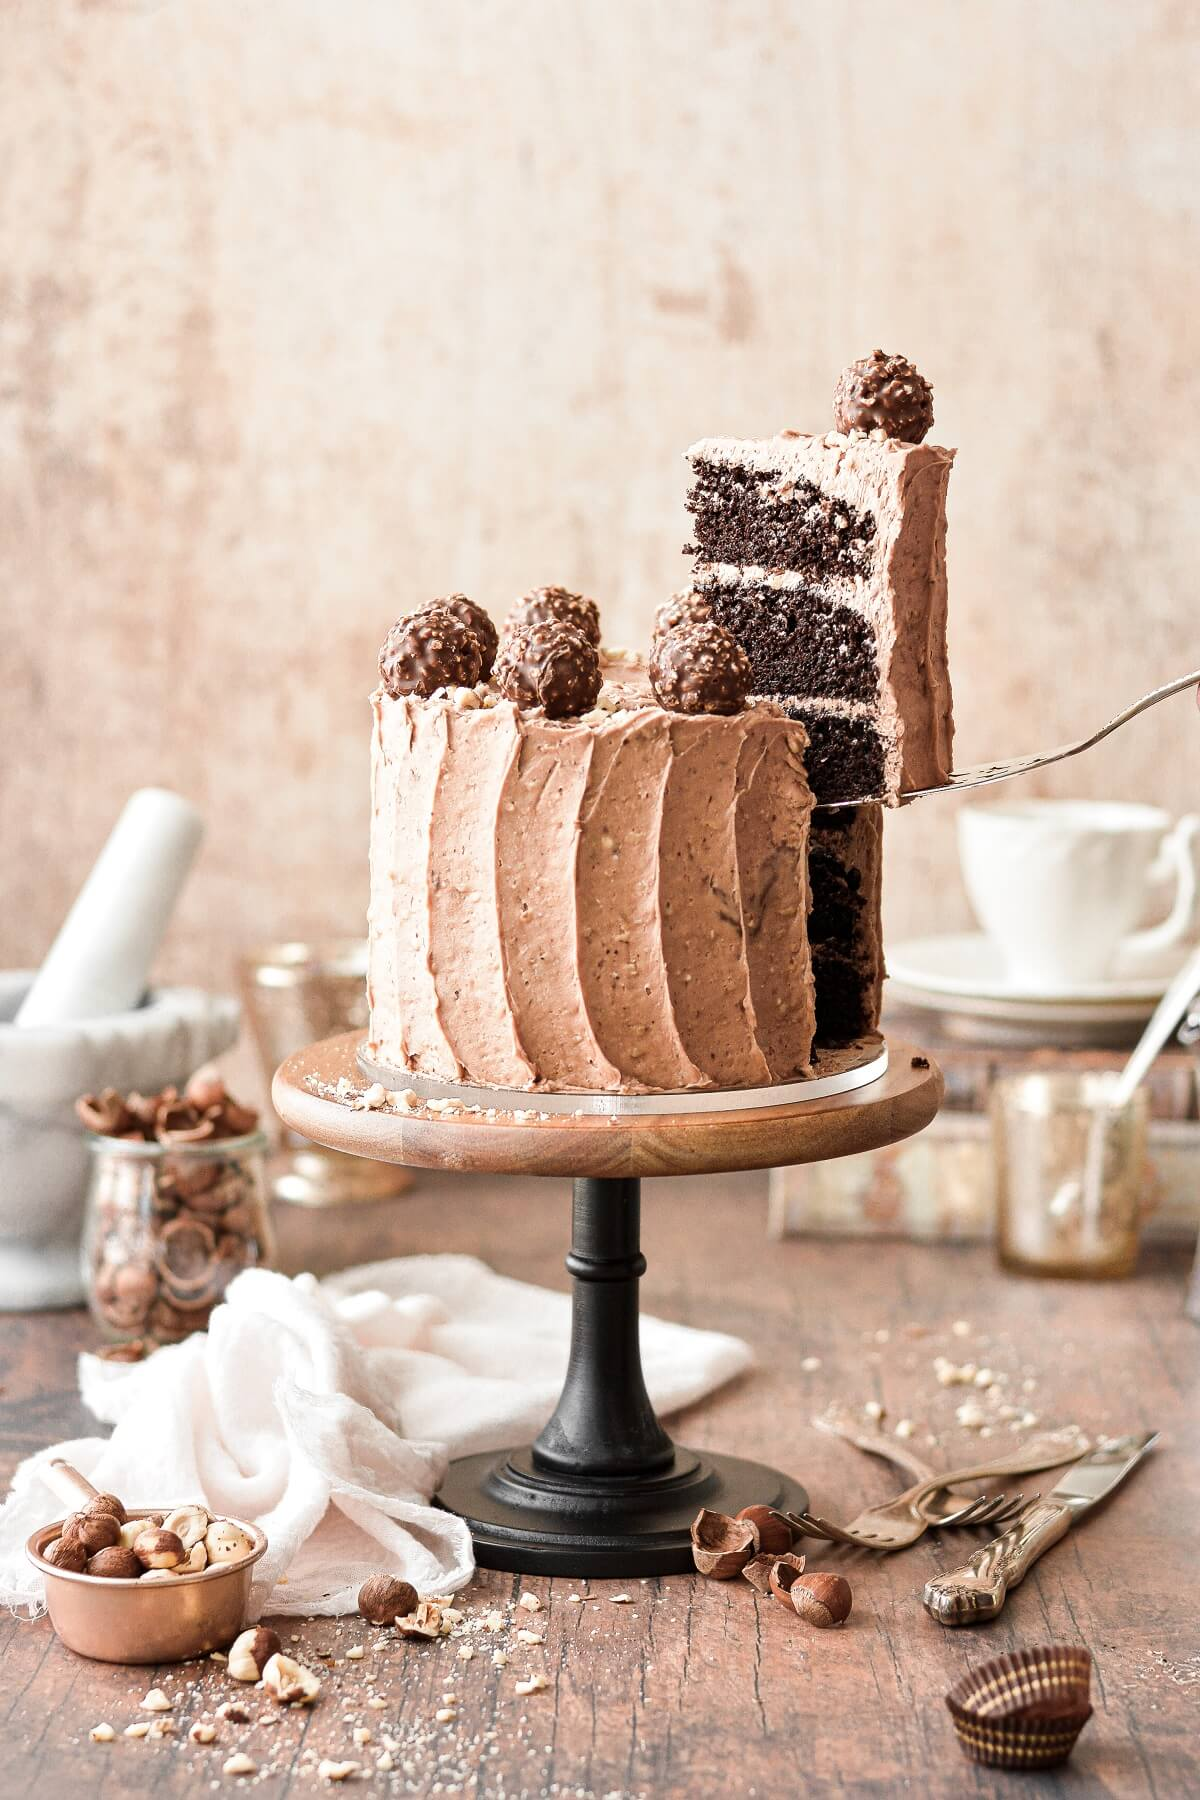 Chocolate hazelnut cake with a slice being lifted out.